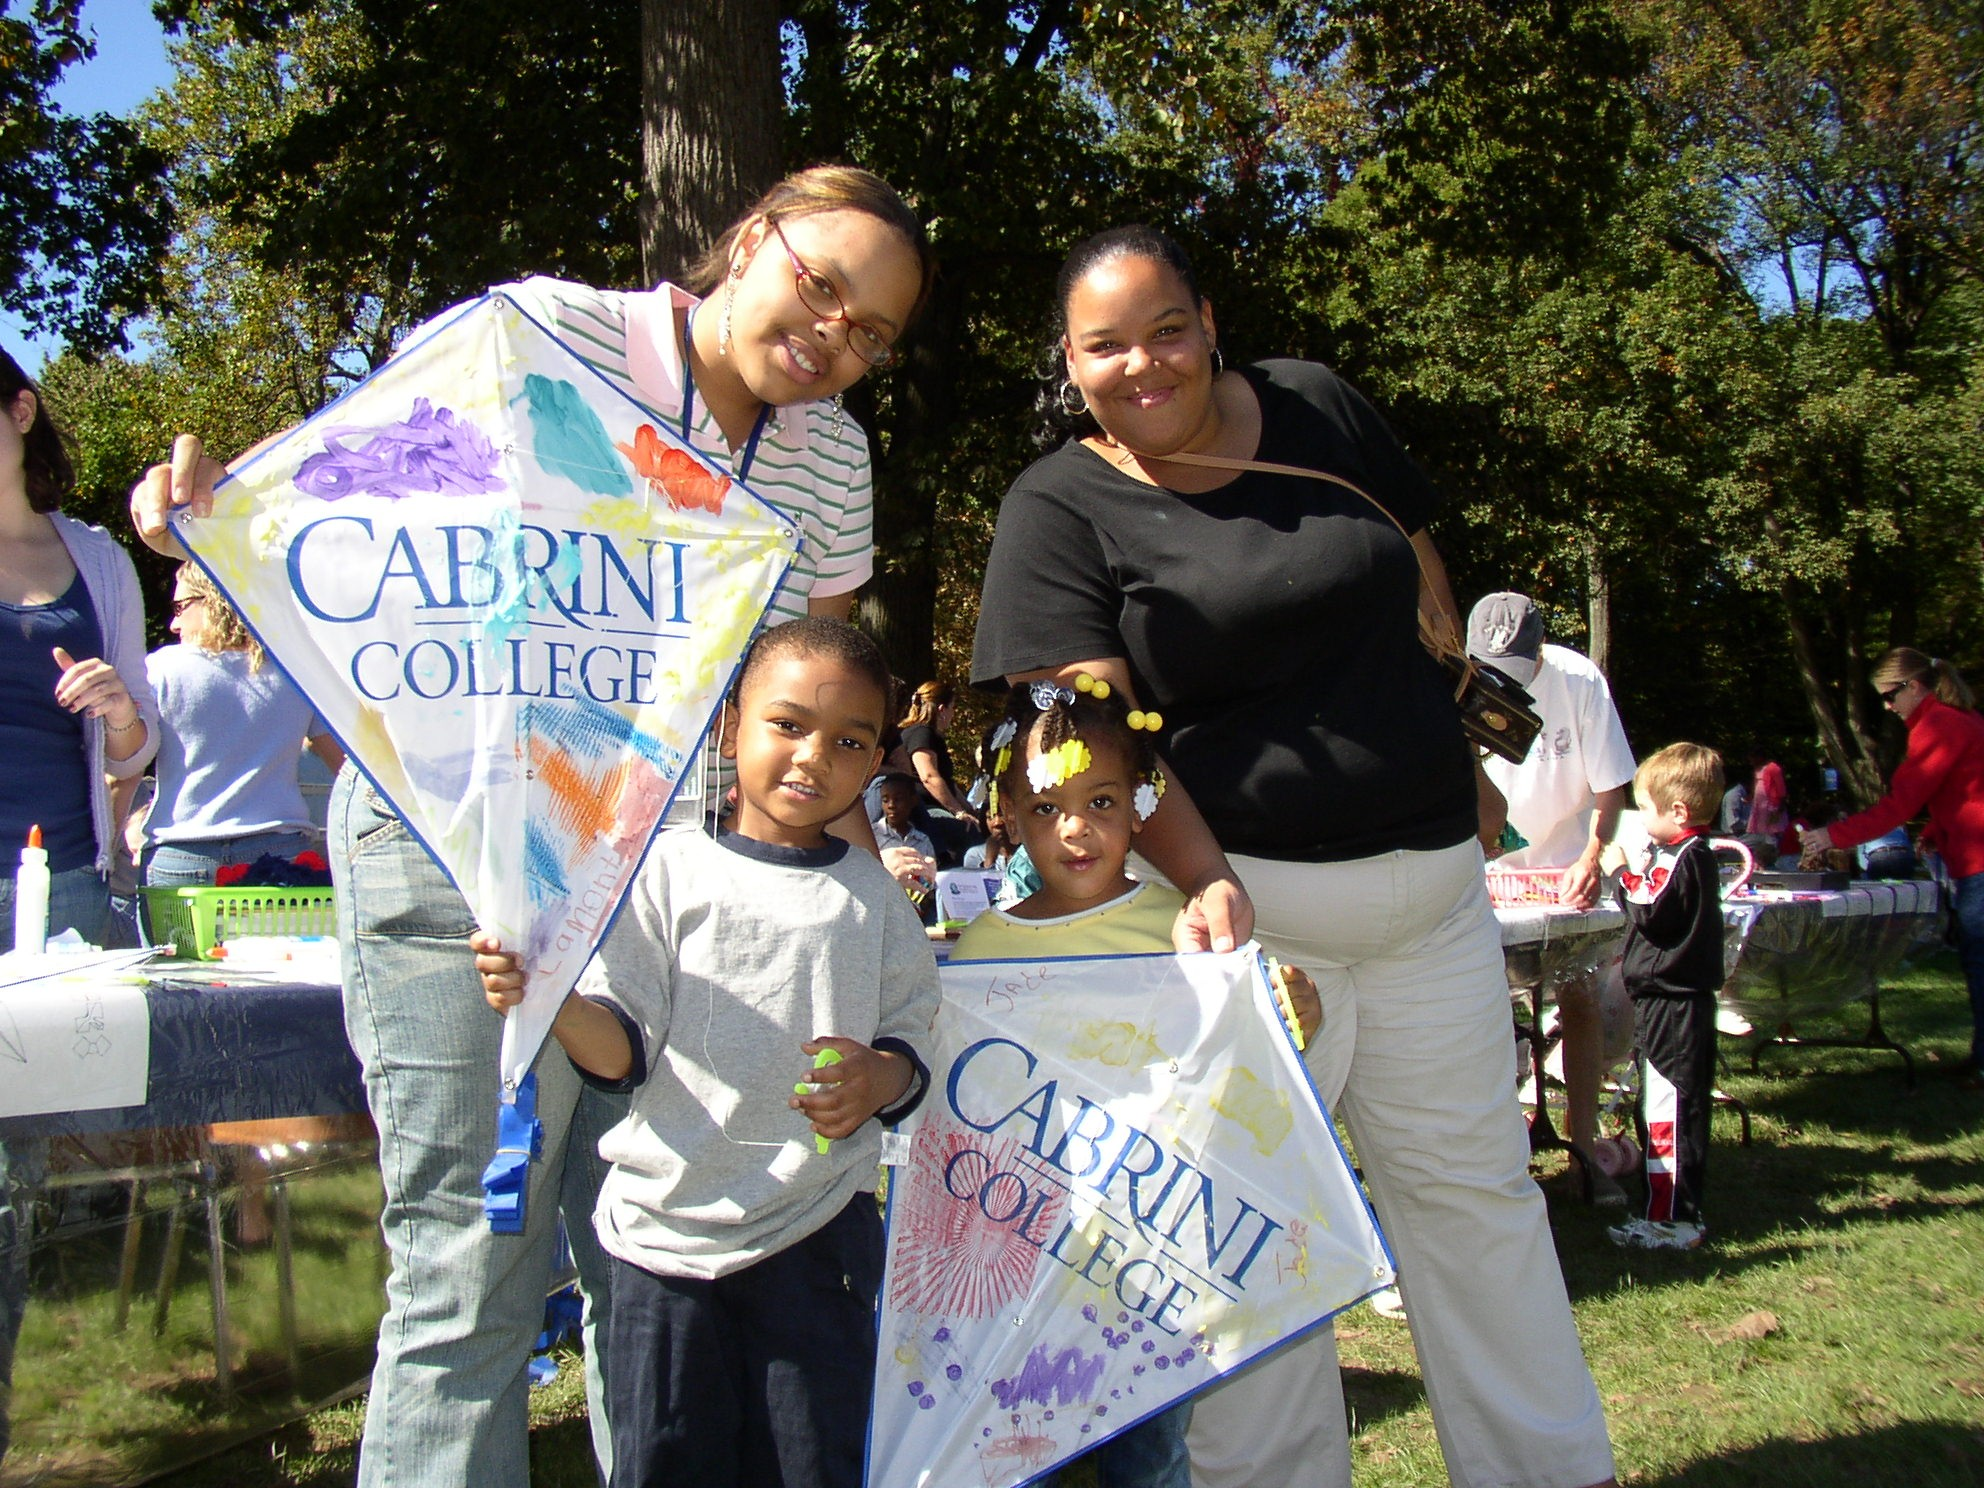 Kites Thru Art at Cabrini College's Family Weekend